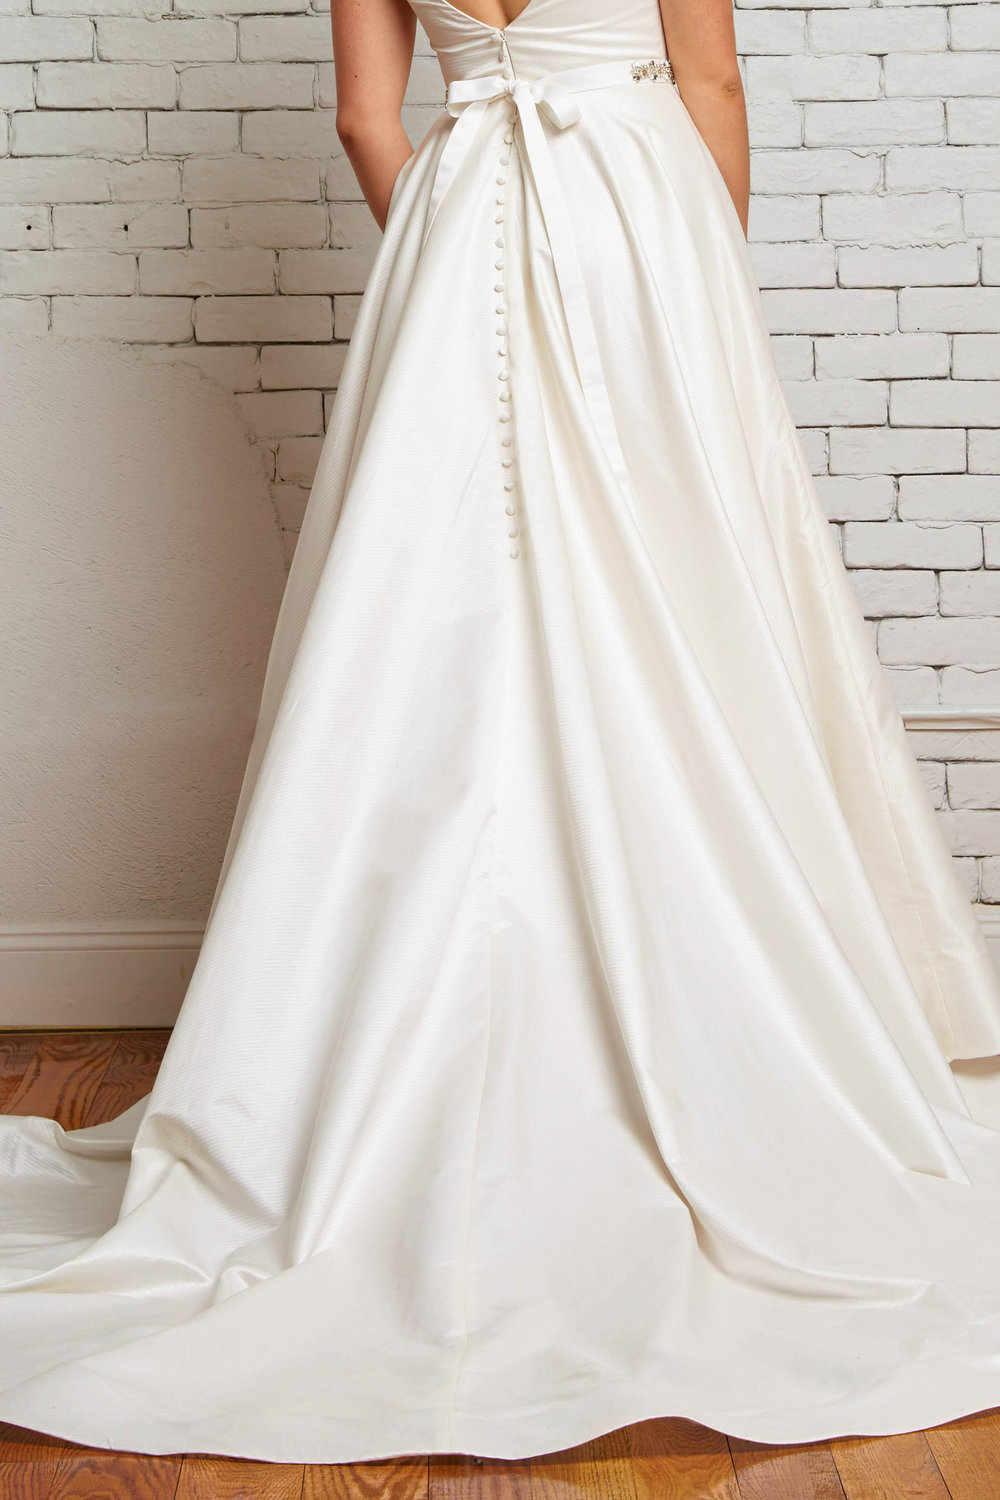 10D London Back-Rebecca Schoneveld-Satin_V-neck_Simplicity_Modern_Wedding_Ballgown.jpg